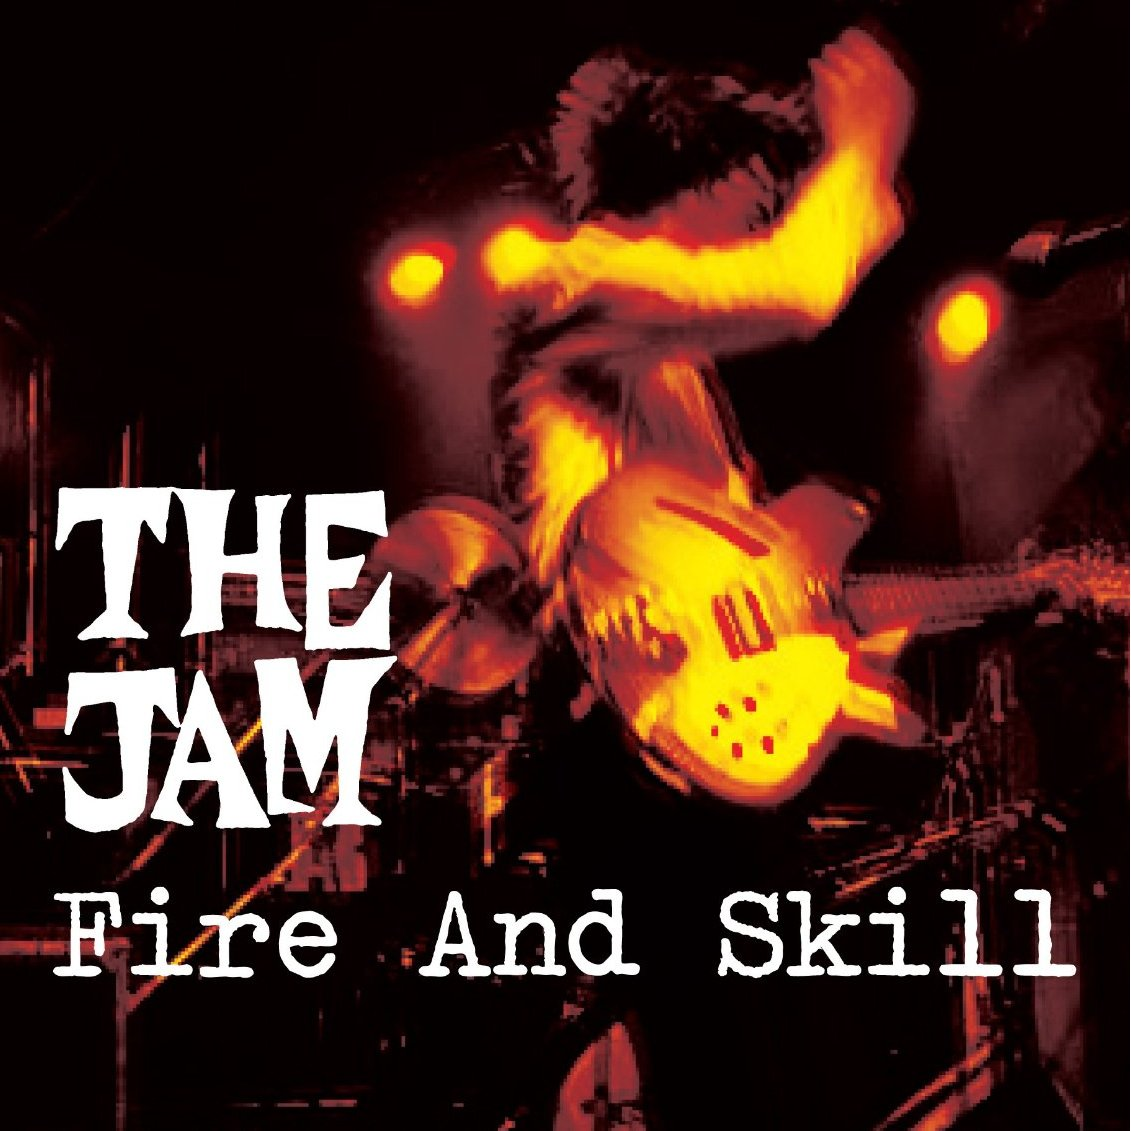 The Jam live album, Fire And Skill, front cover